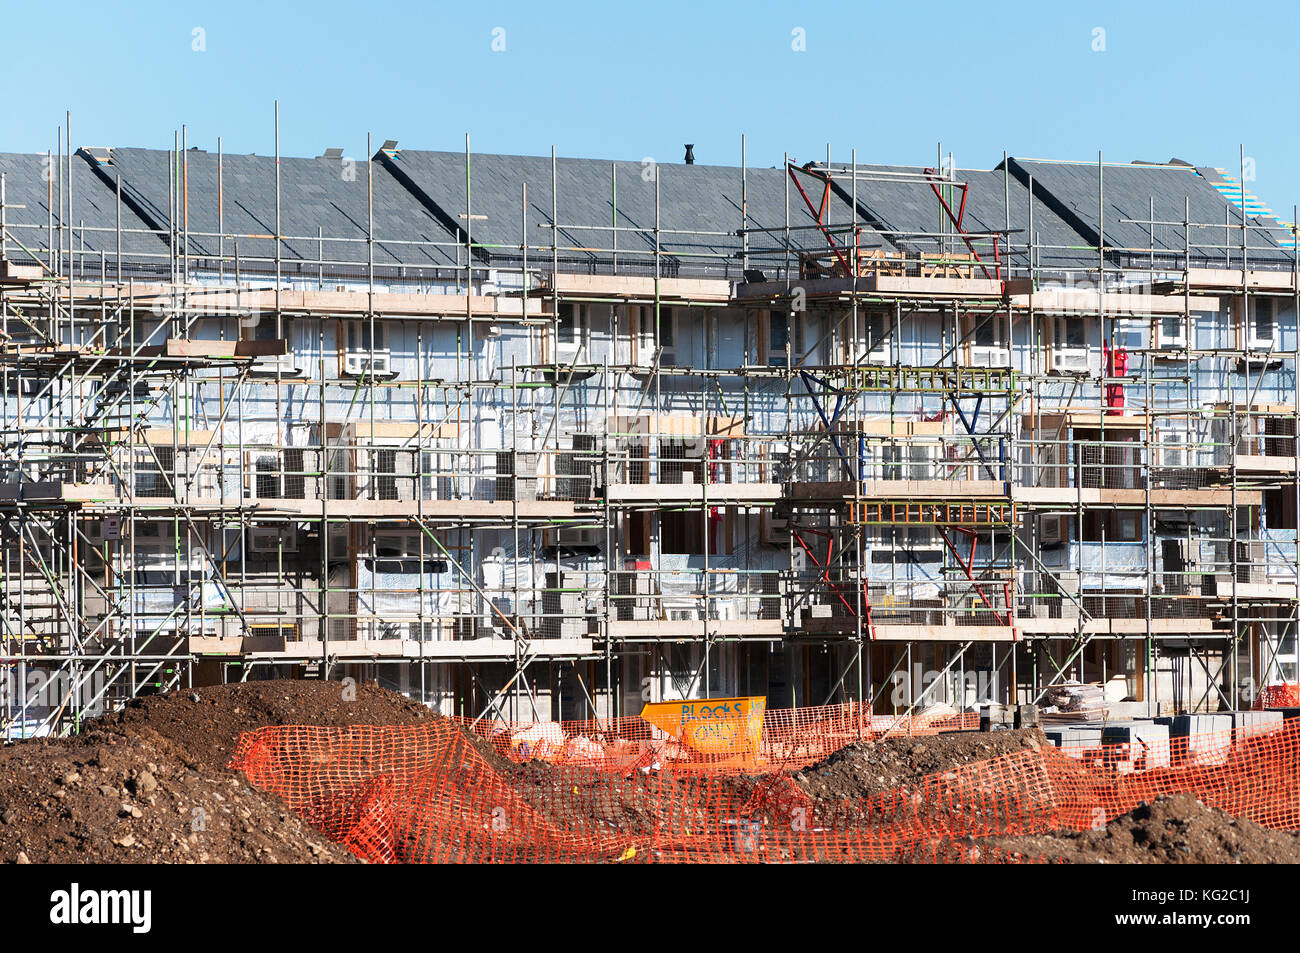 Uk construction industry stock photos uk construction for Affordable house construction